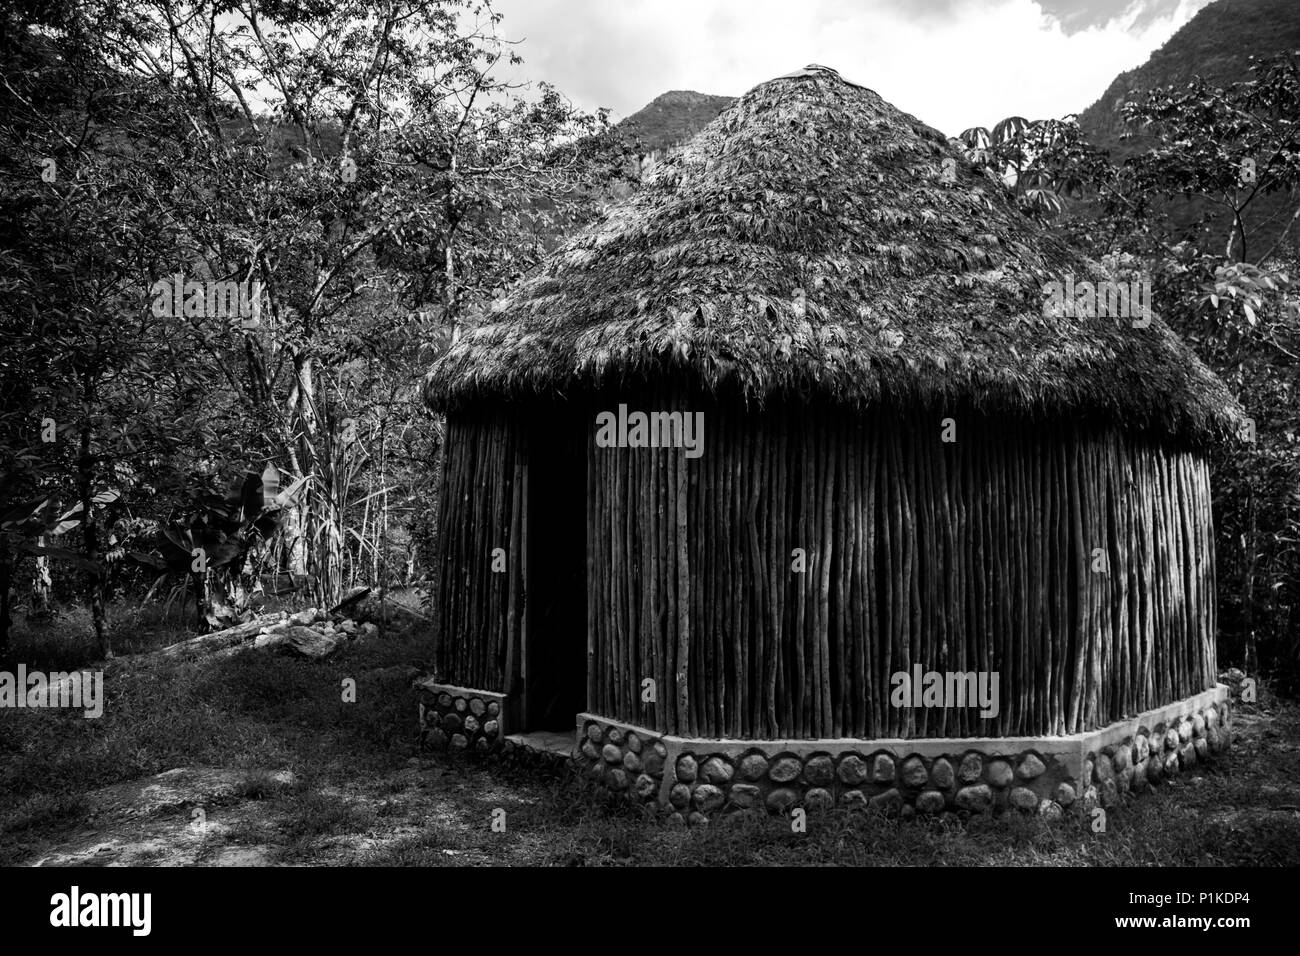 A hut in Los Jardines del Mandor near Machu Picchu in Per. - Stock Image